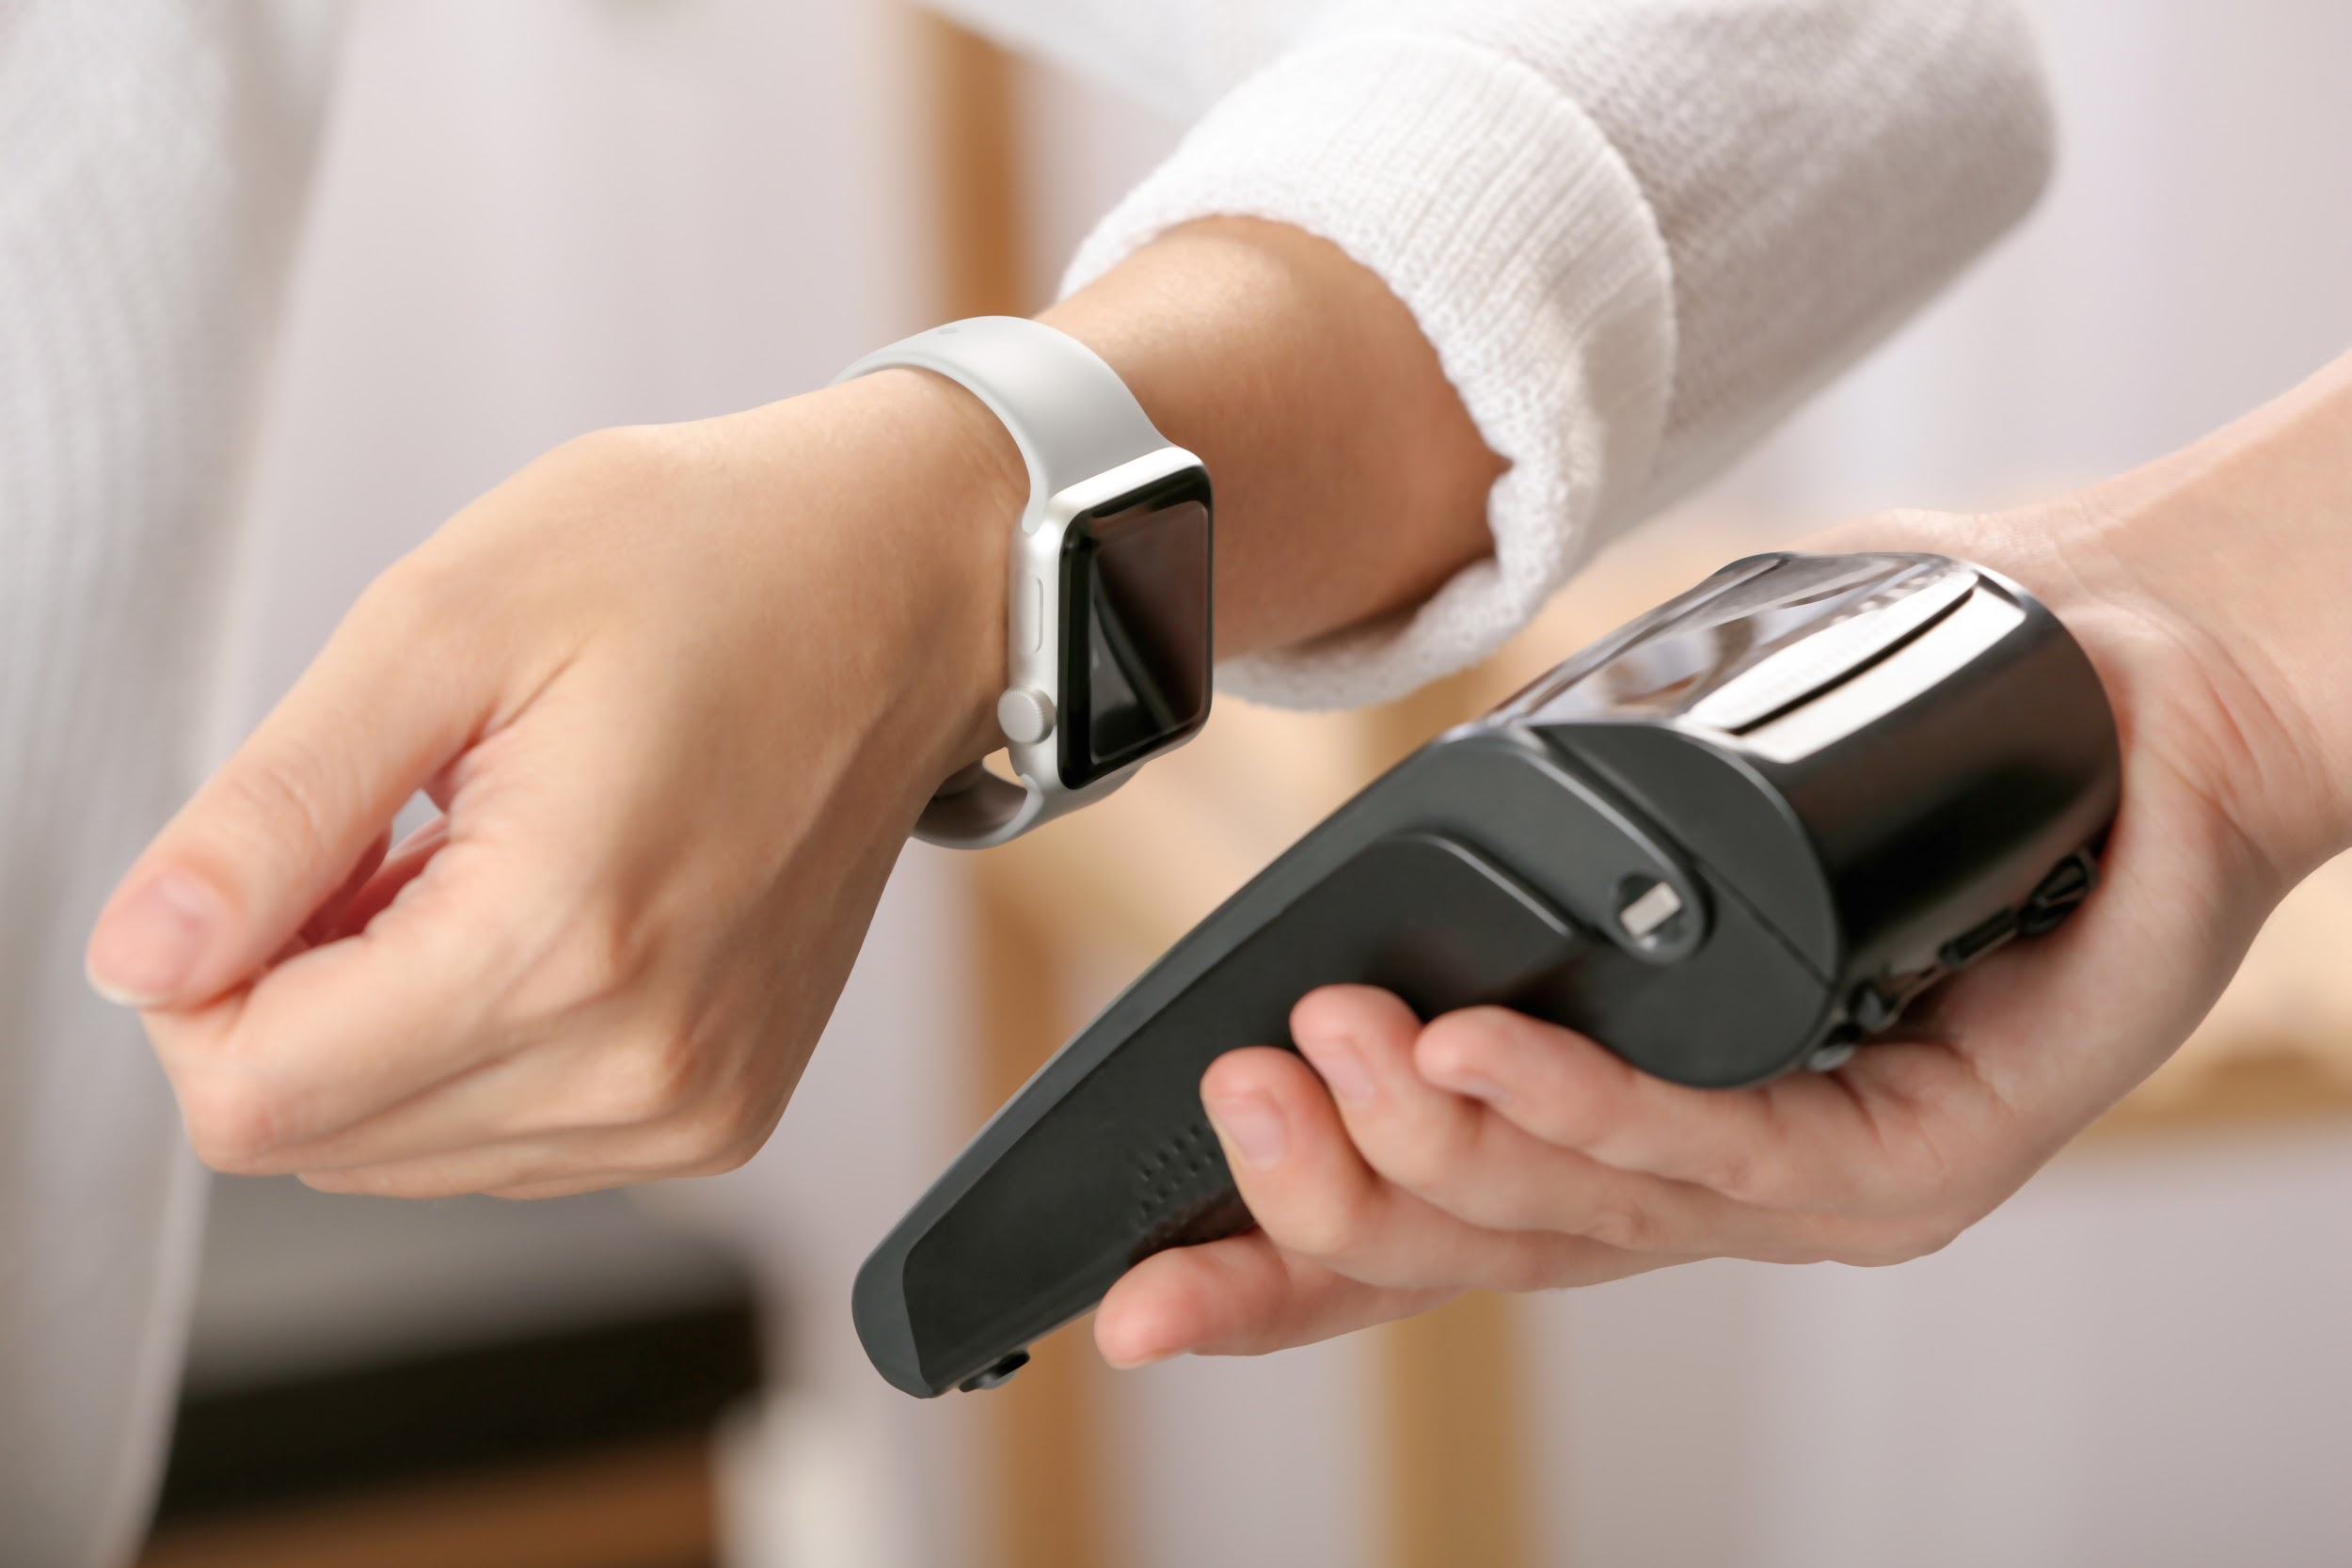 : A customer making a contactless purchase through her smartwatch.